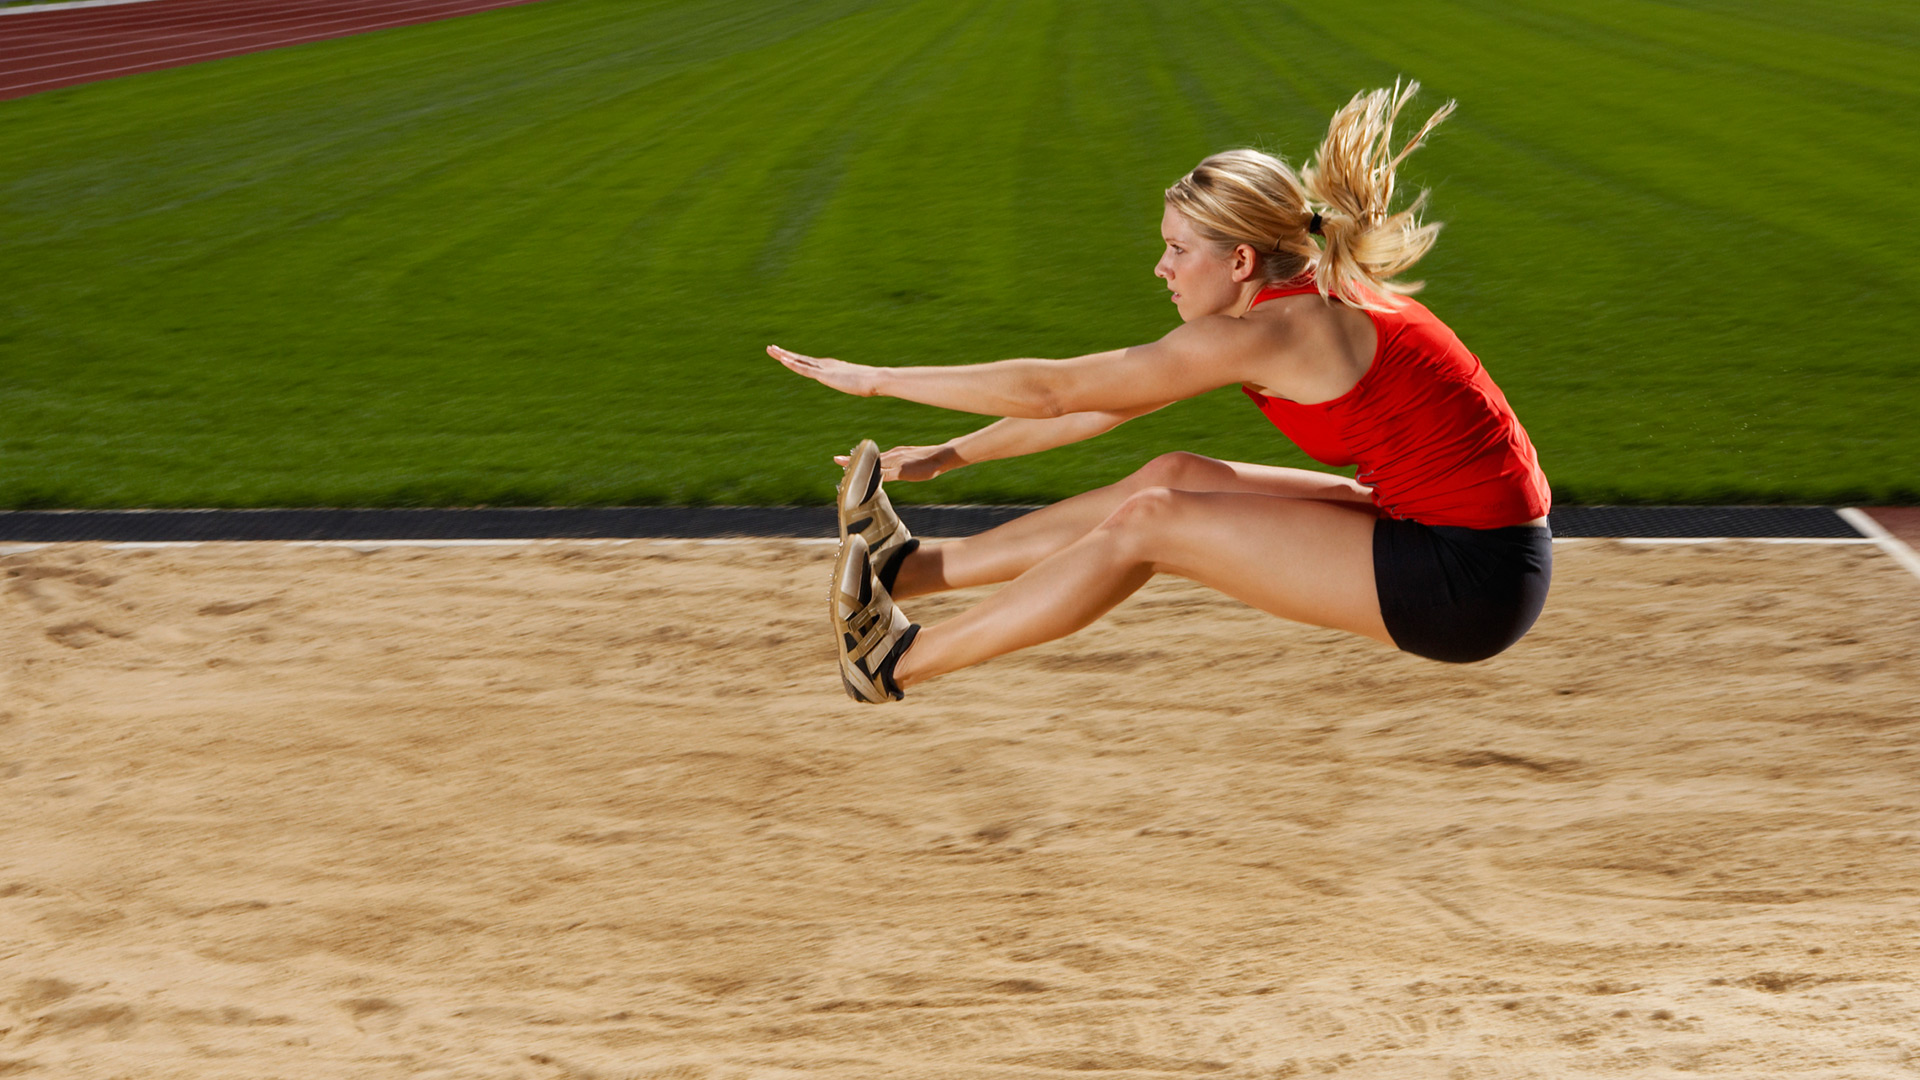 Standing Long Jump | Sheknows.com